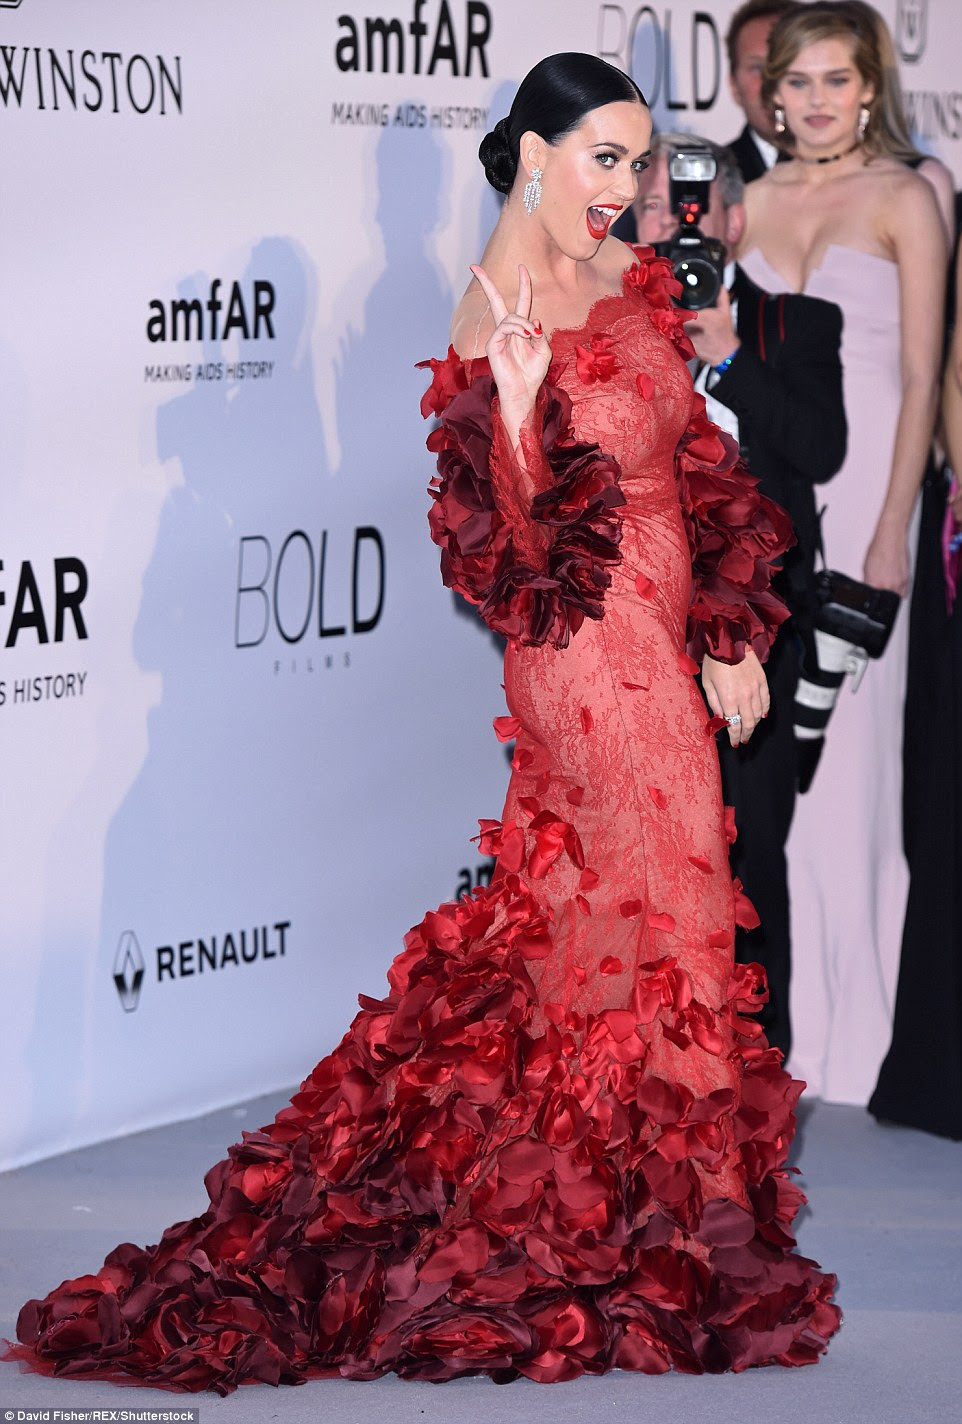 Peace of me: Katy flashed a peace sign on the red carpet as she headed into the star-studded event